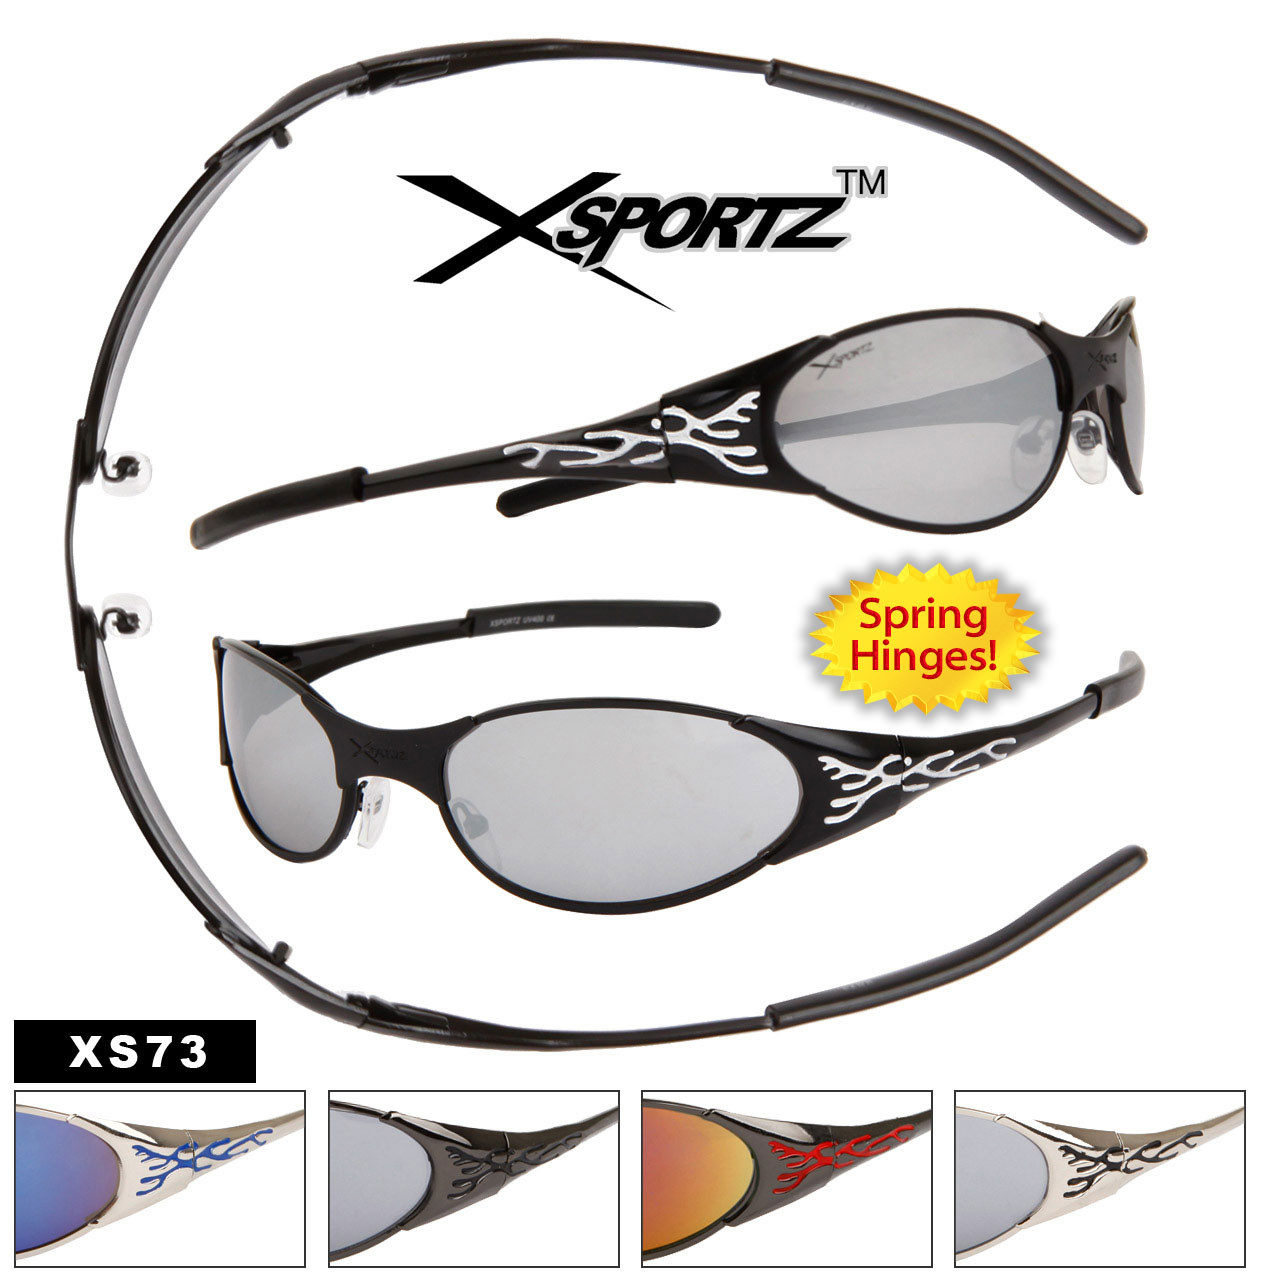 Wholesale Xsportz™ Sunglasses - Style #XS73 Spring Hinges